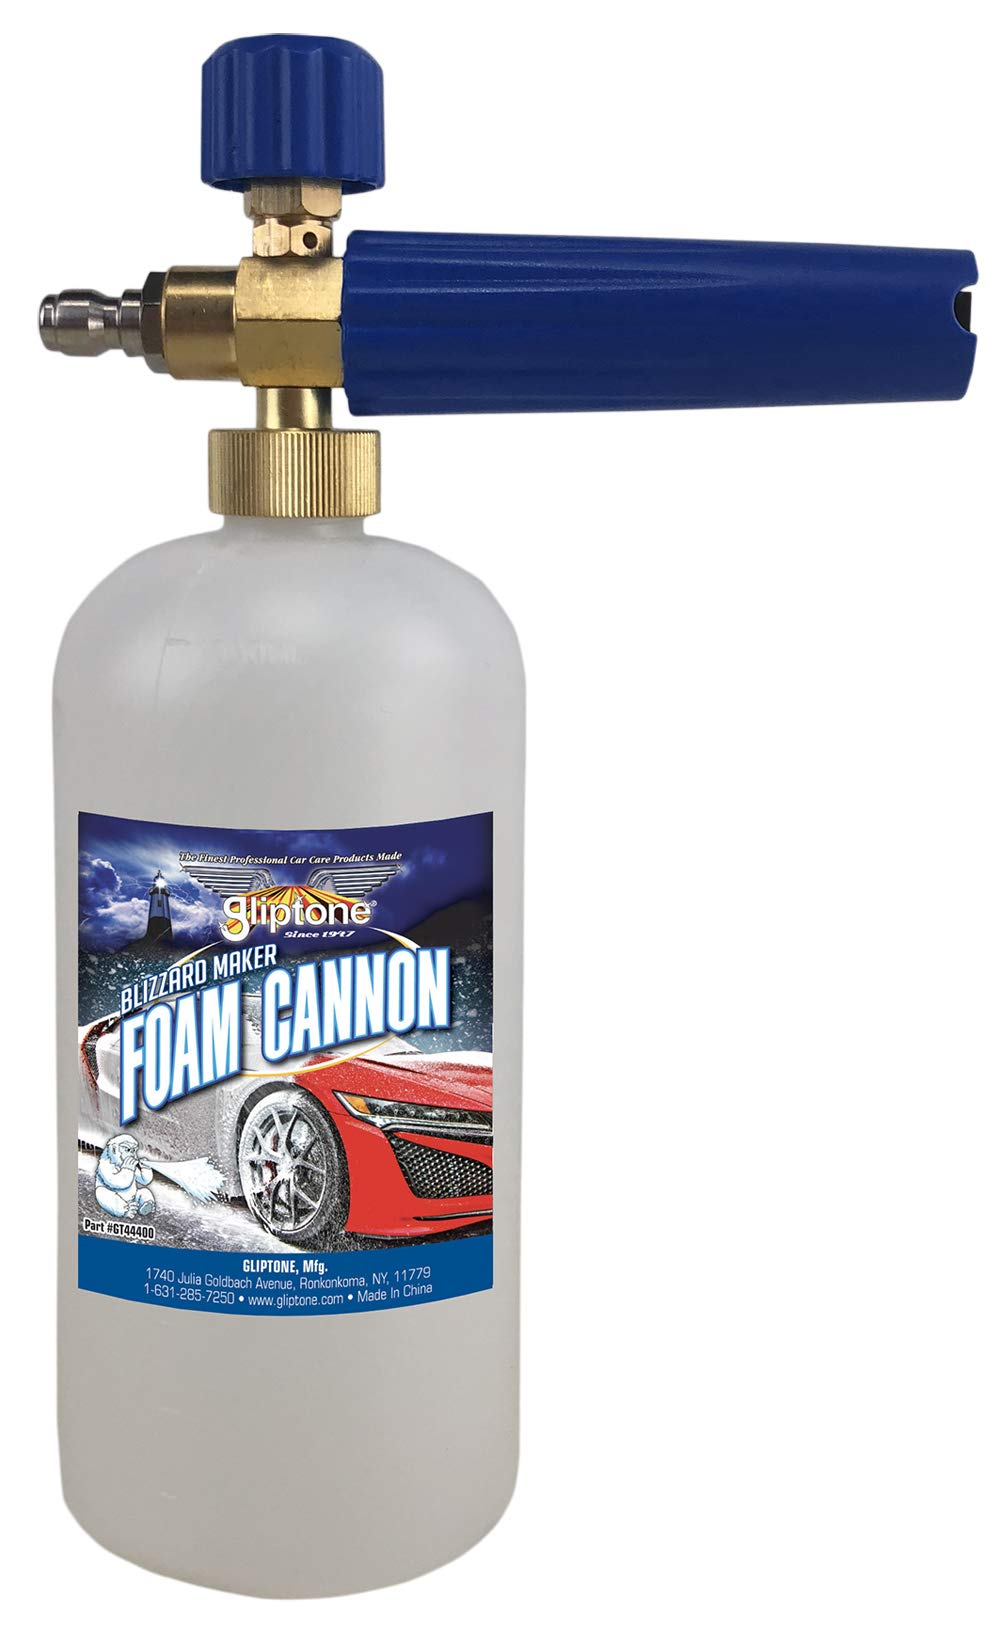 Gliptone Blizzard Maker Foam Cannon